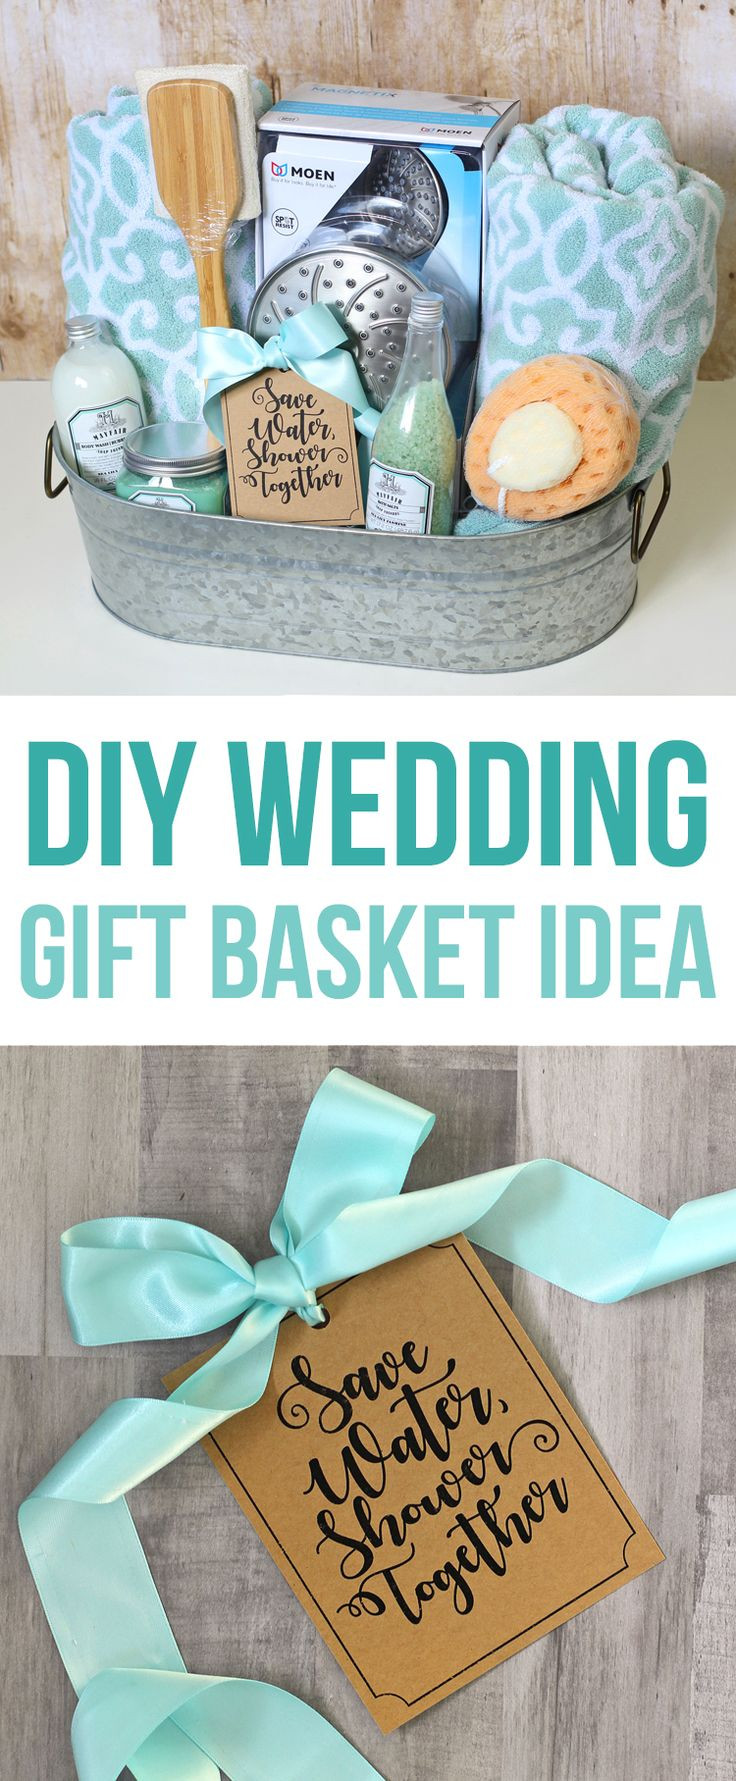 Best ideas about DIY Wedding Gifts . Save or Pin Best 25 Luxury shower ideas on Pinterest Now.